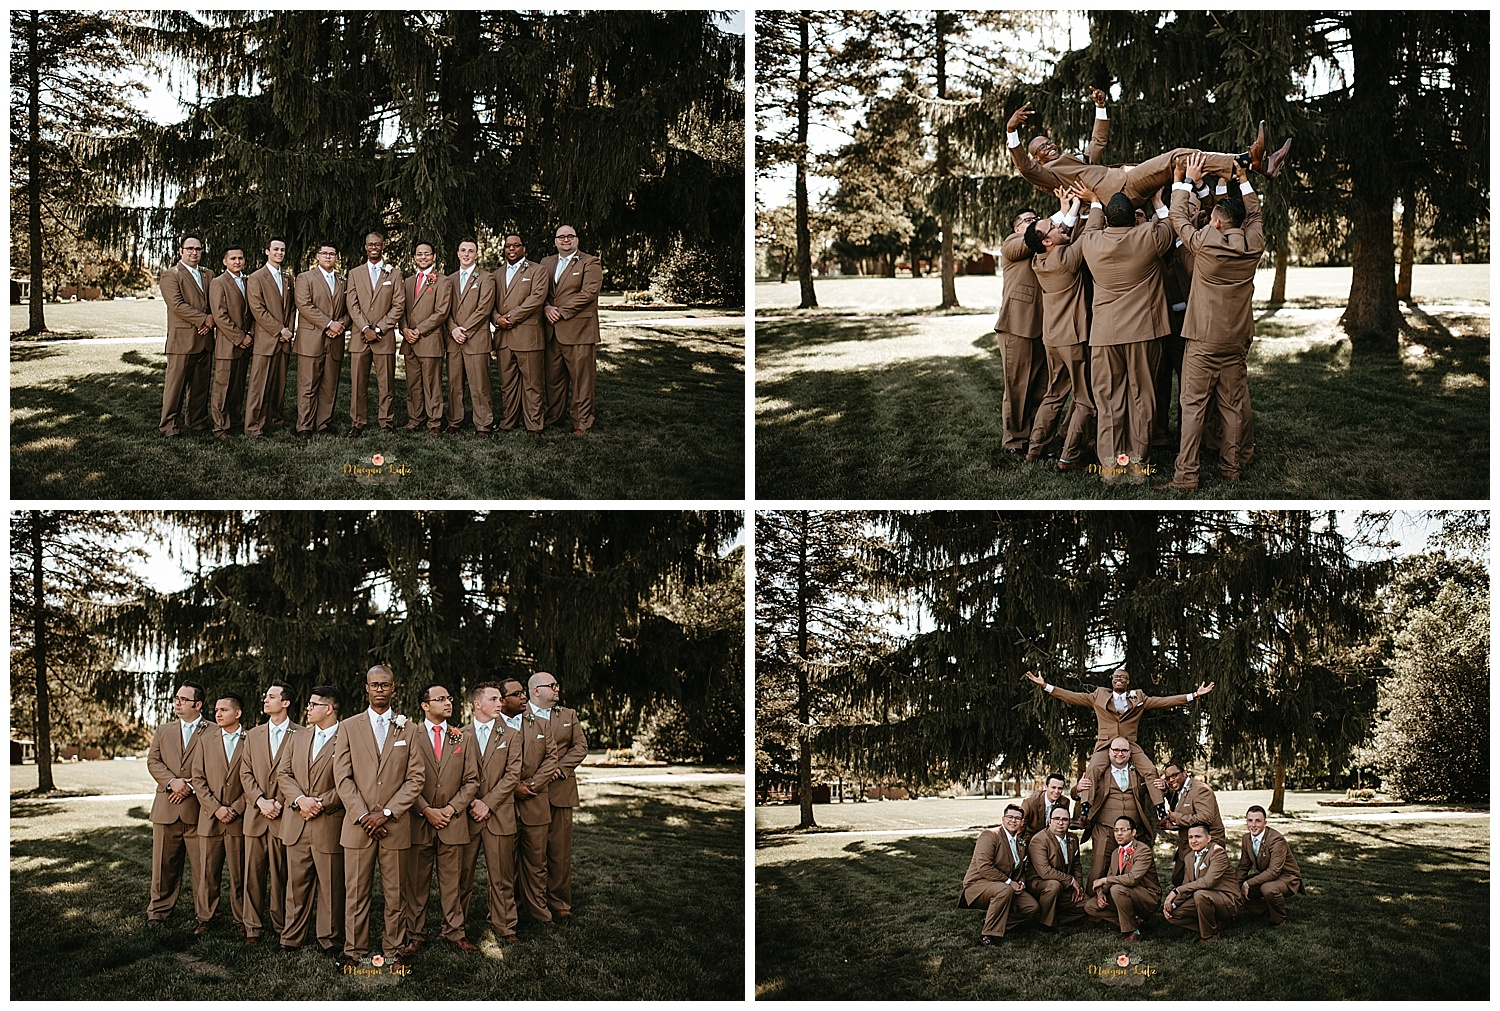 NEPA-Wedding-Photographer-in-Central-PA_0135.jpg